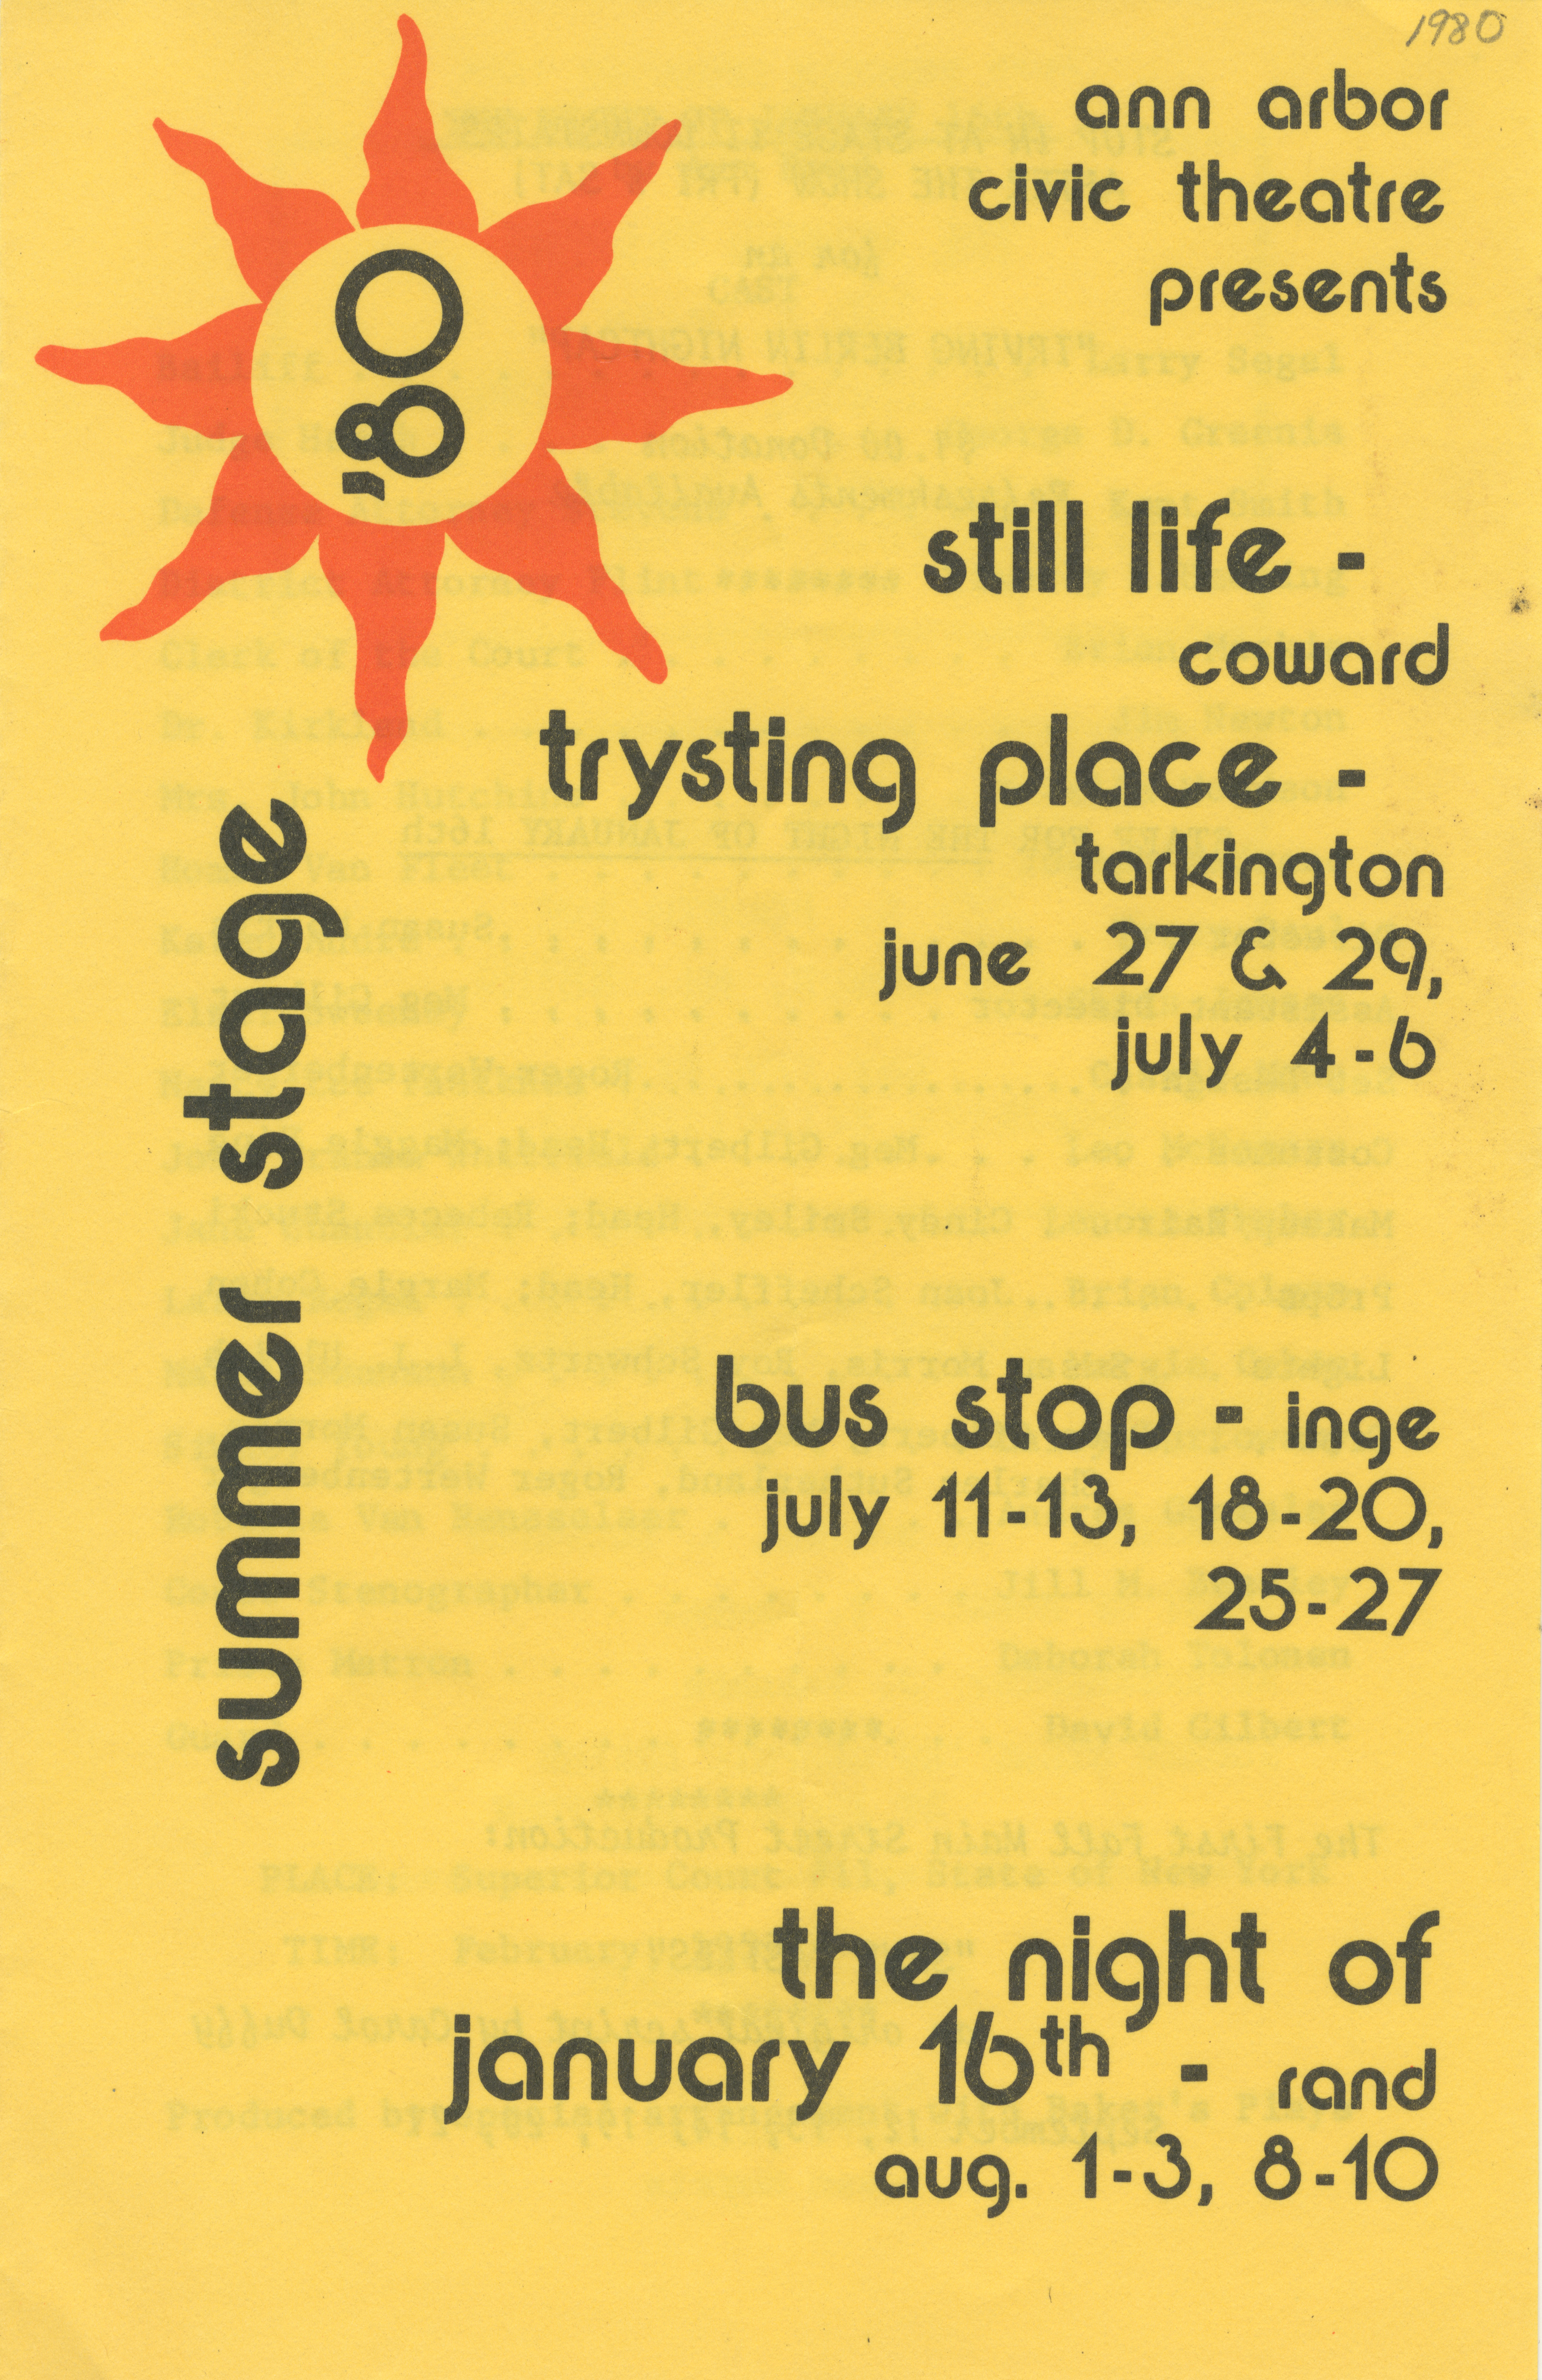 Ann Arbor Civic Theatre Program: Summer Stage, August 01, 1980 image